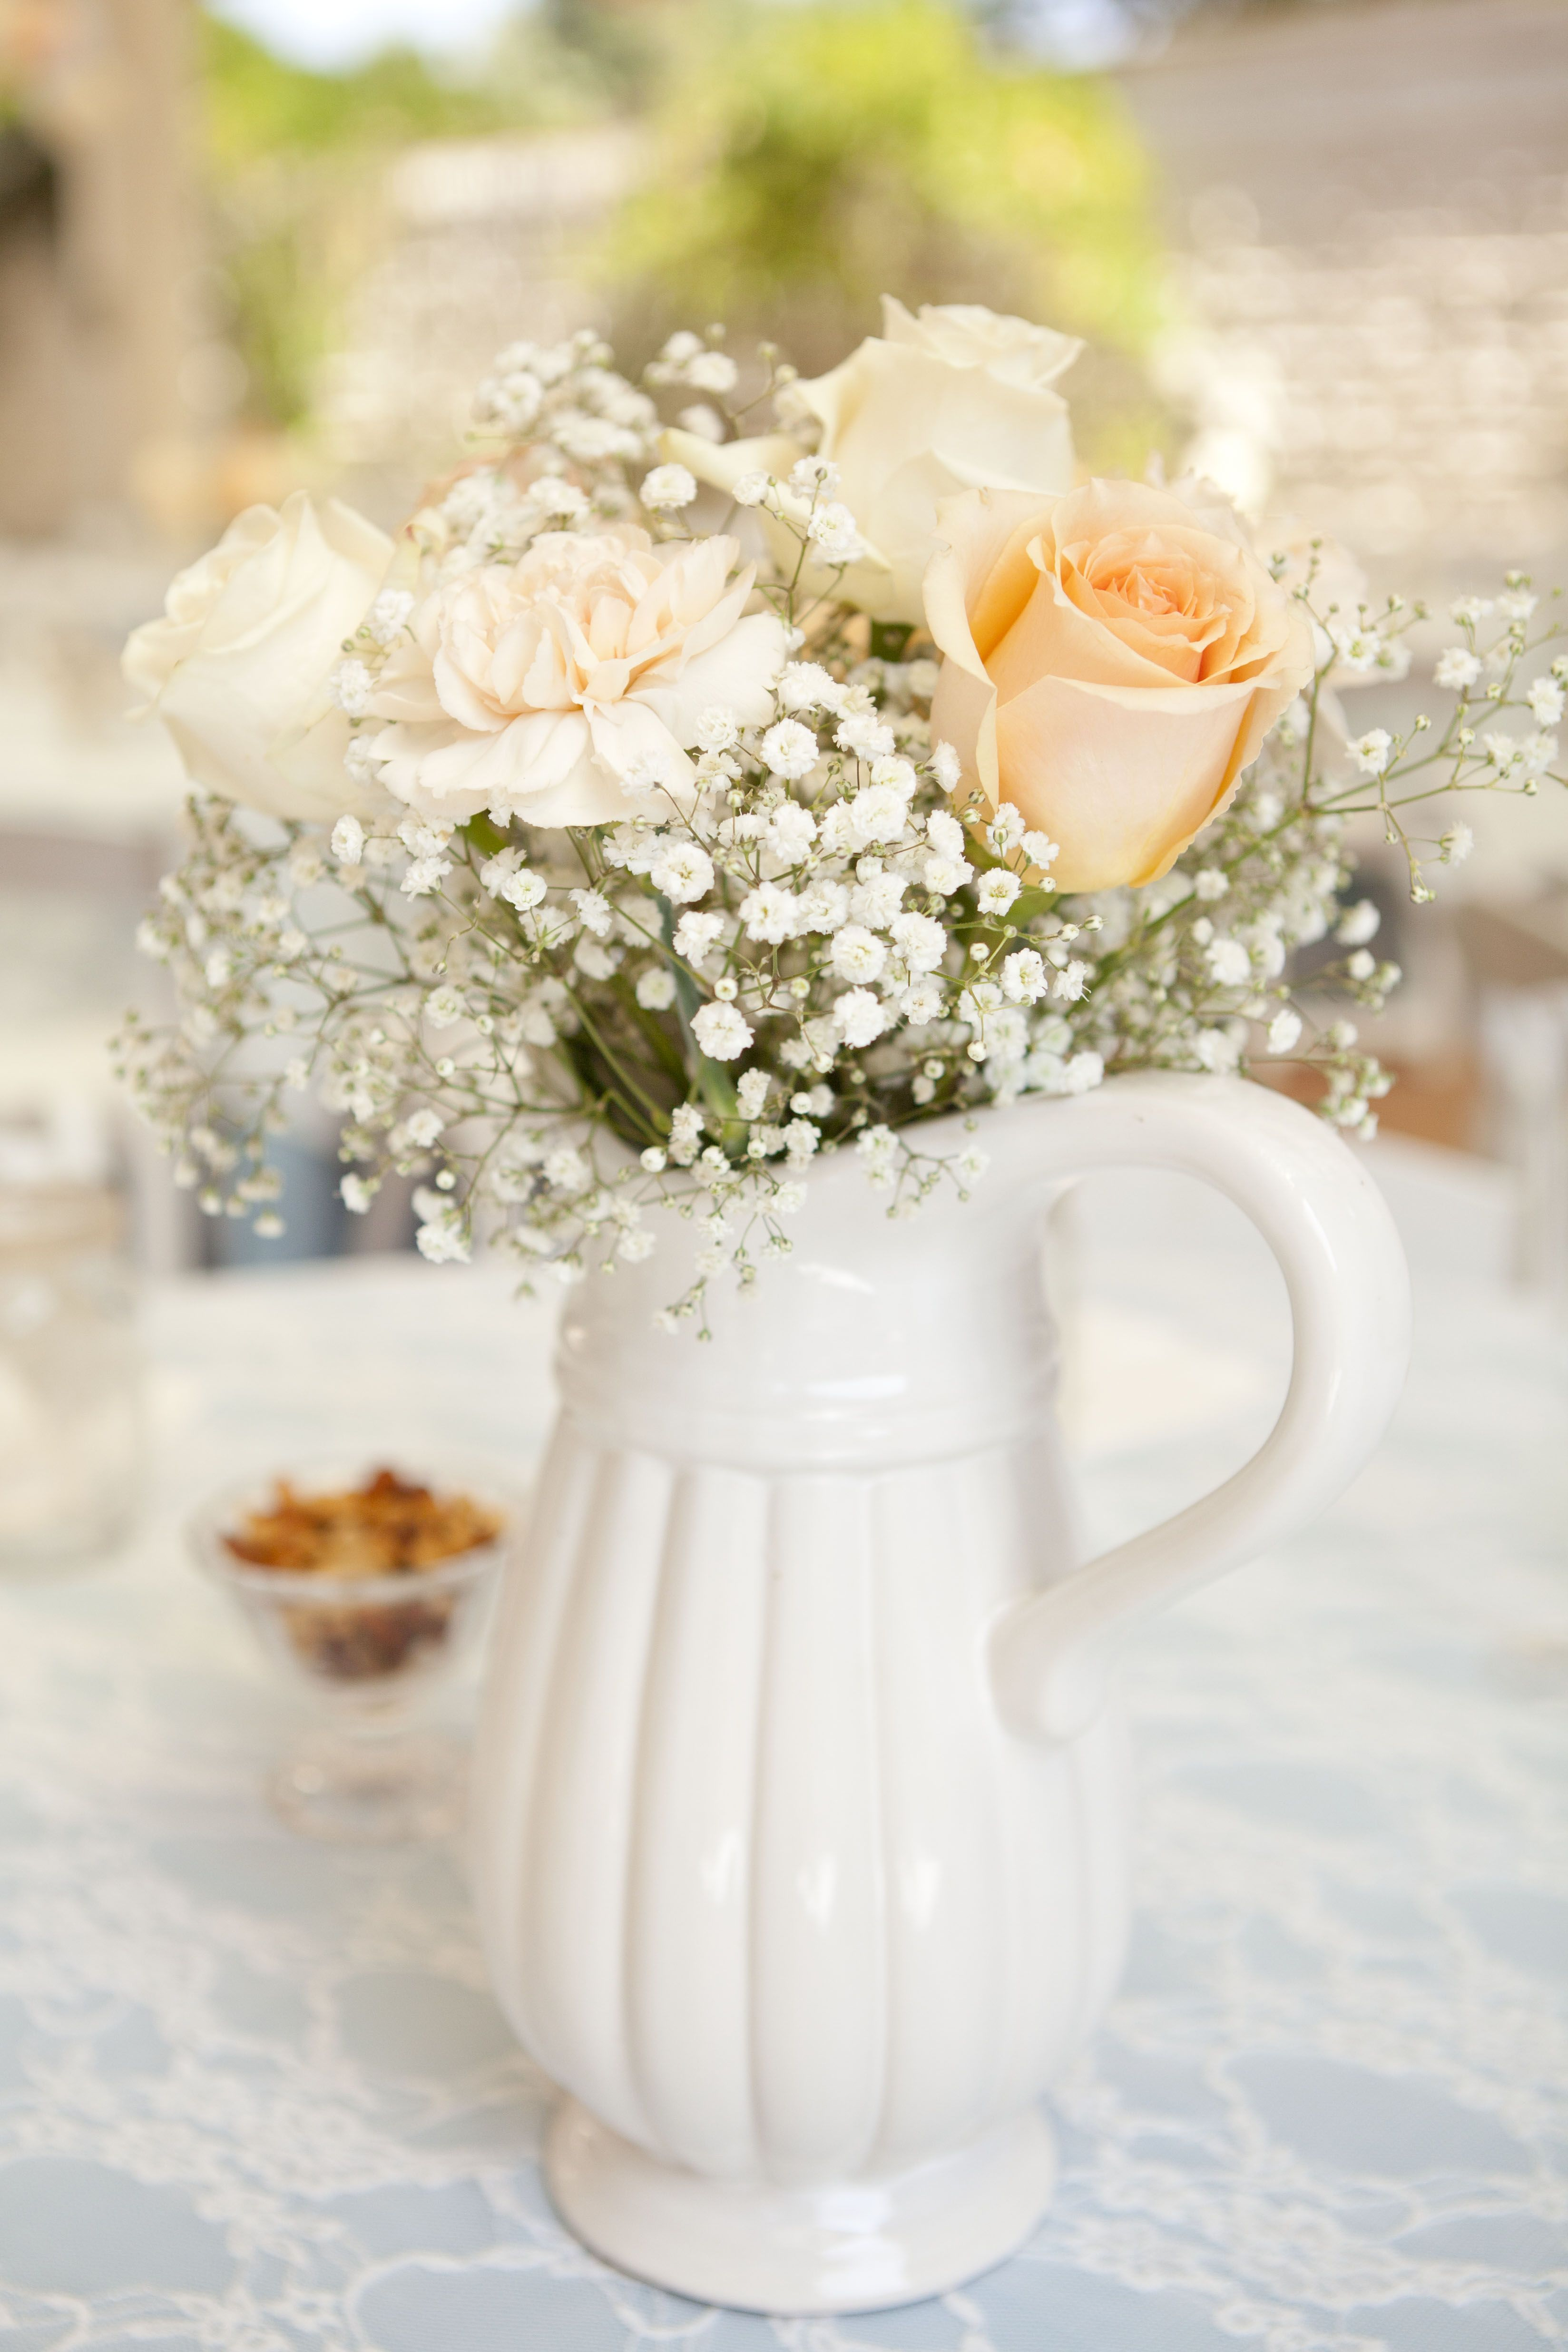 Magnificent Shabby Chic Centerpieces Wedding Gift - The Wedding ...